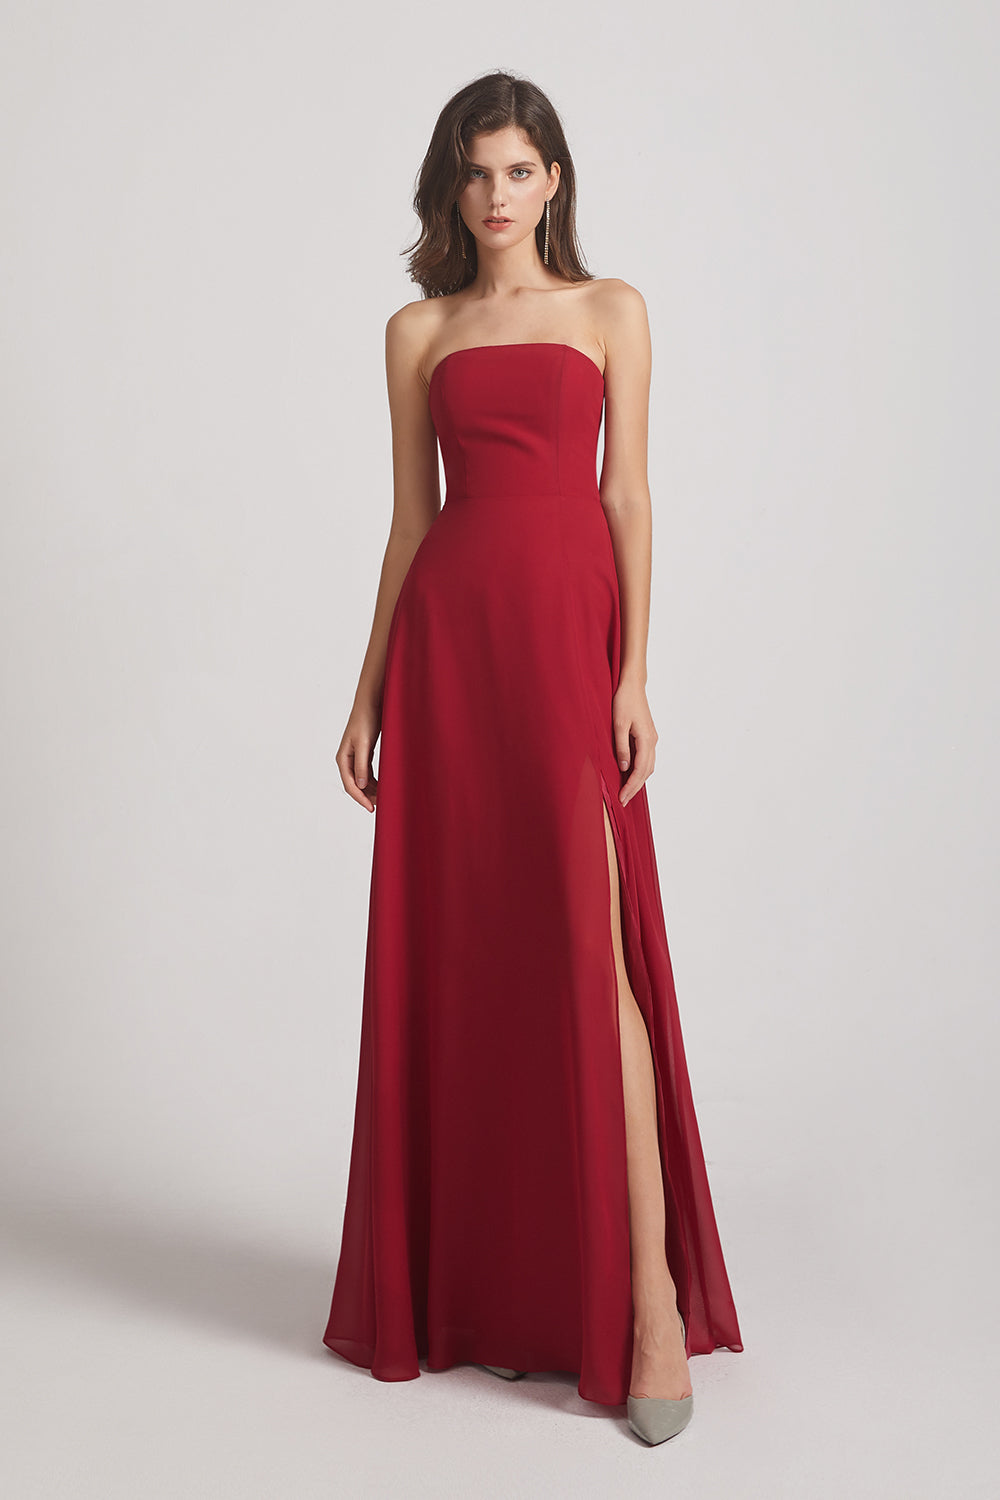 sleeveless red chiffon ruched maid of honor dress